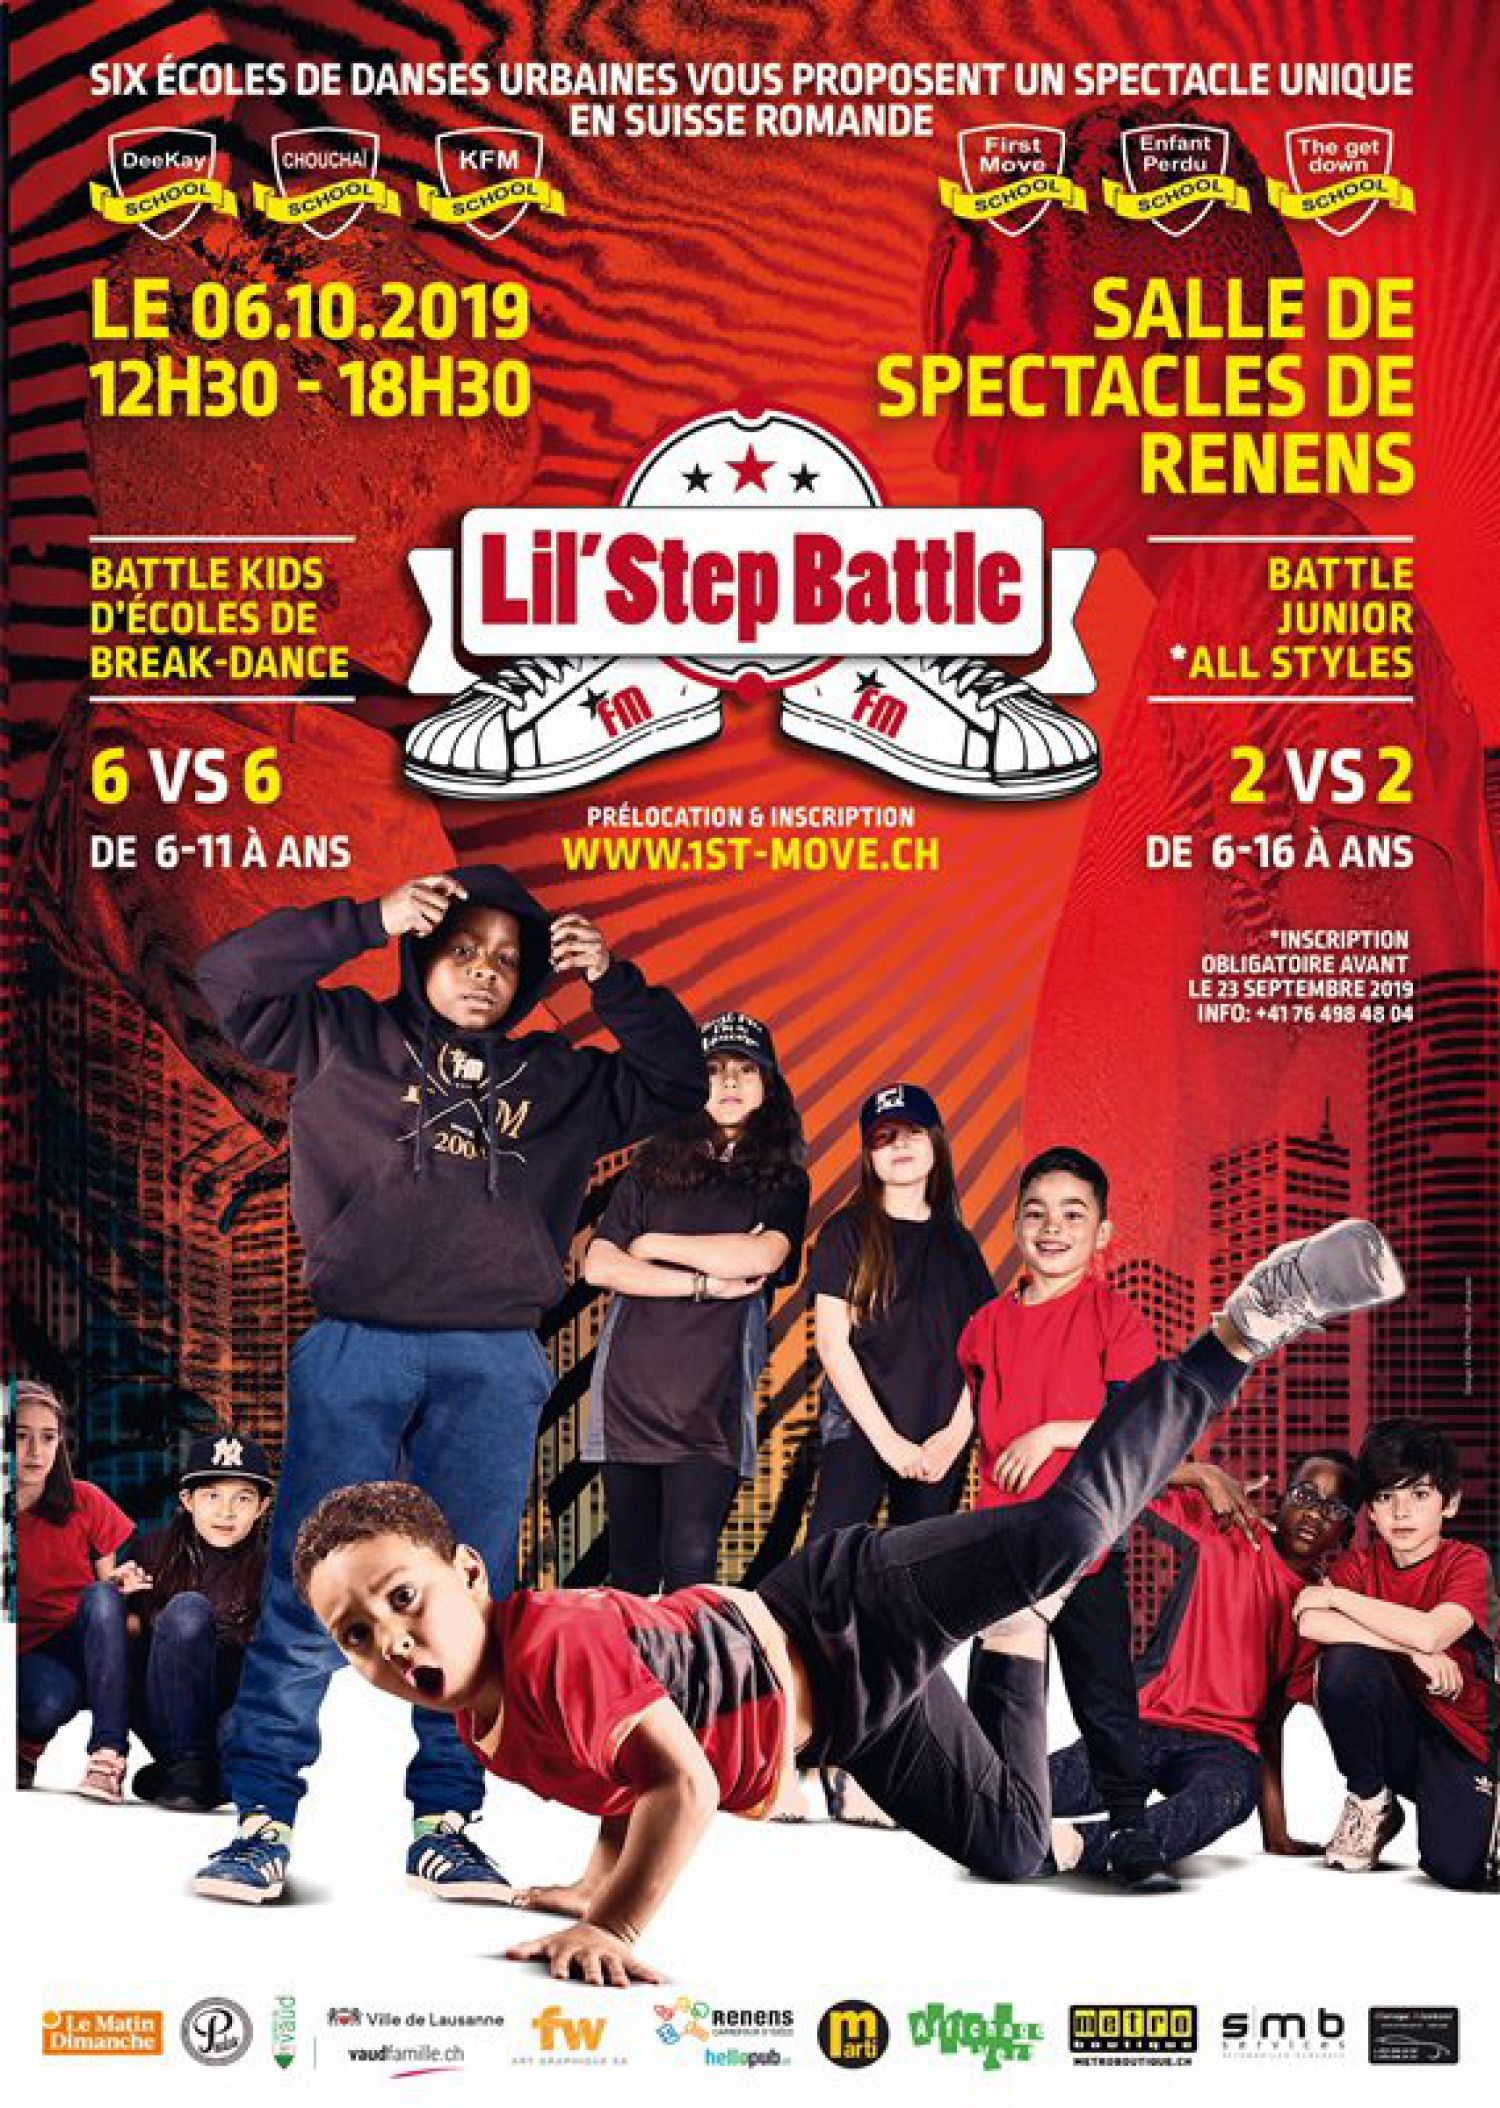 Lil'Step Battle - Battle junior all styles